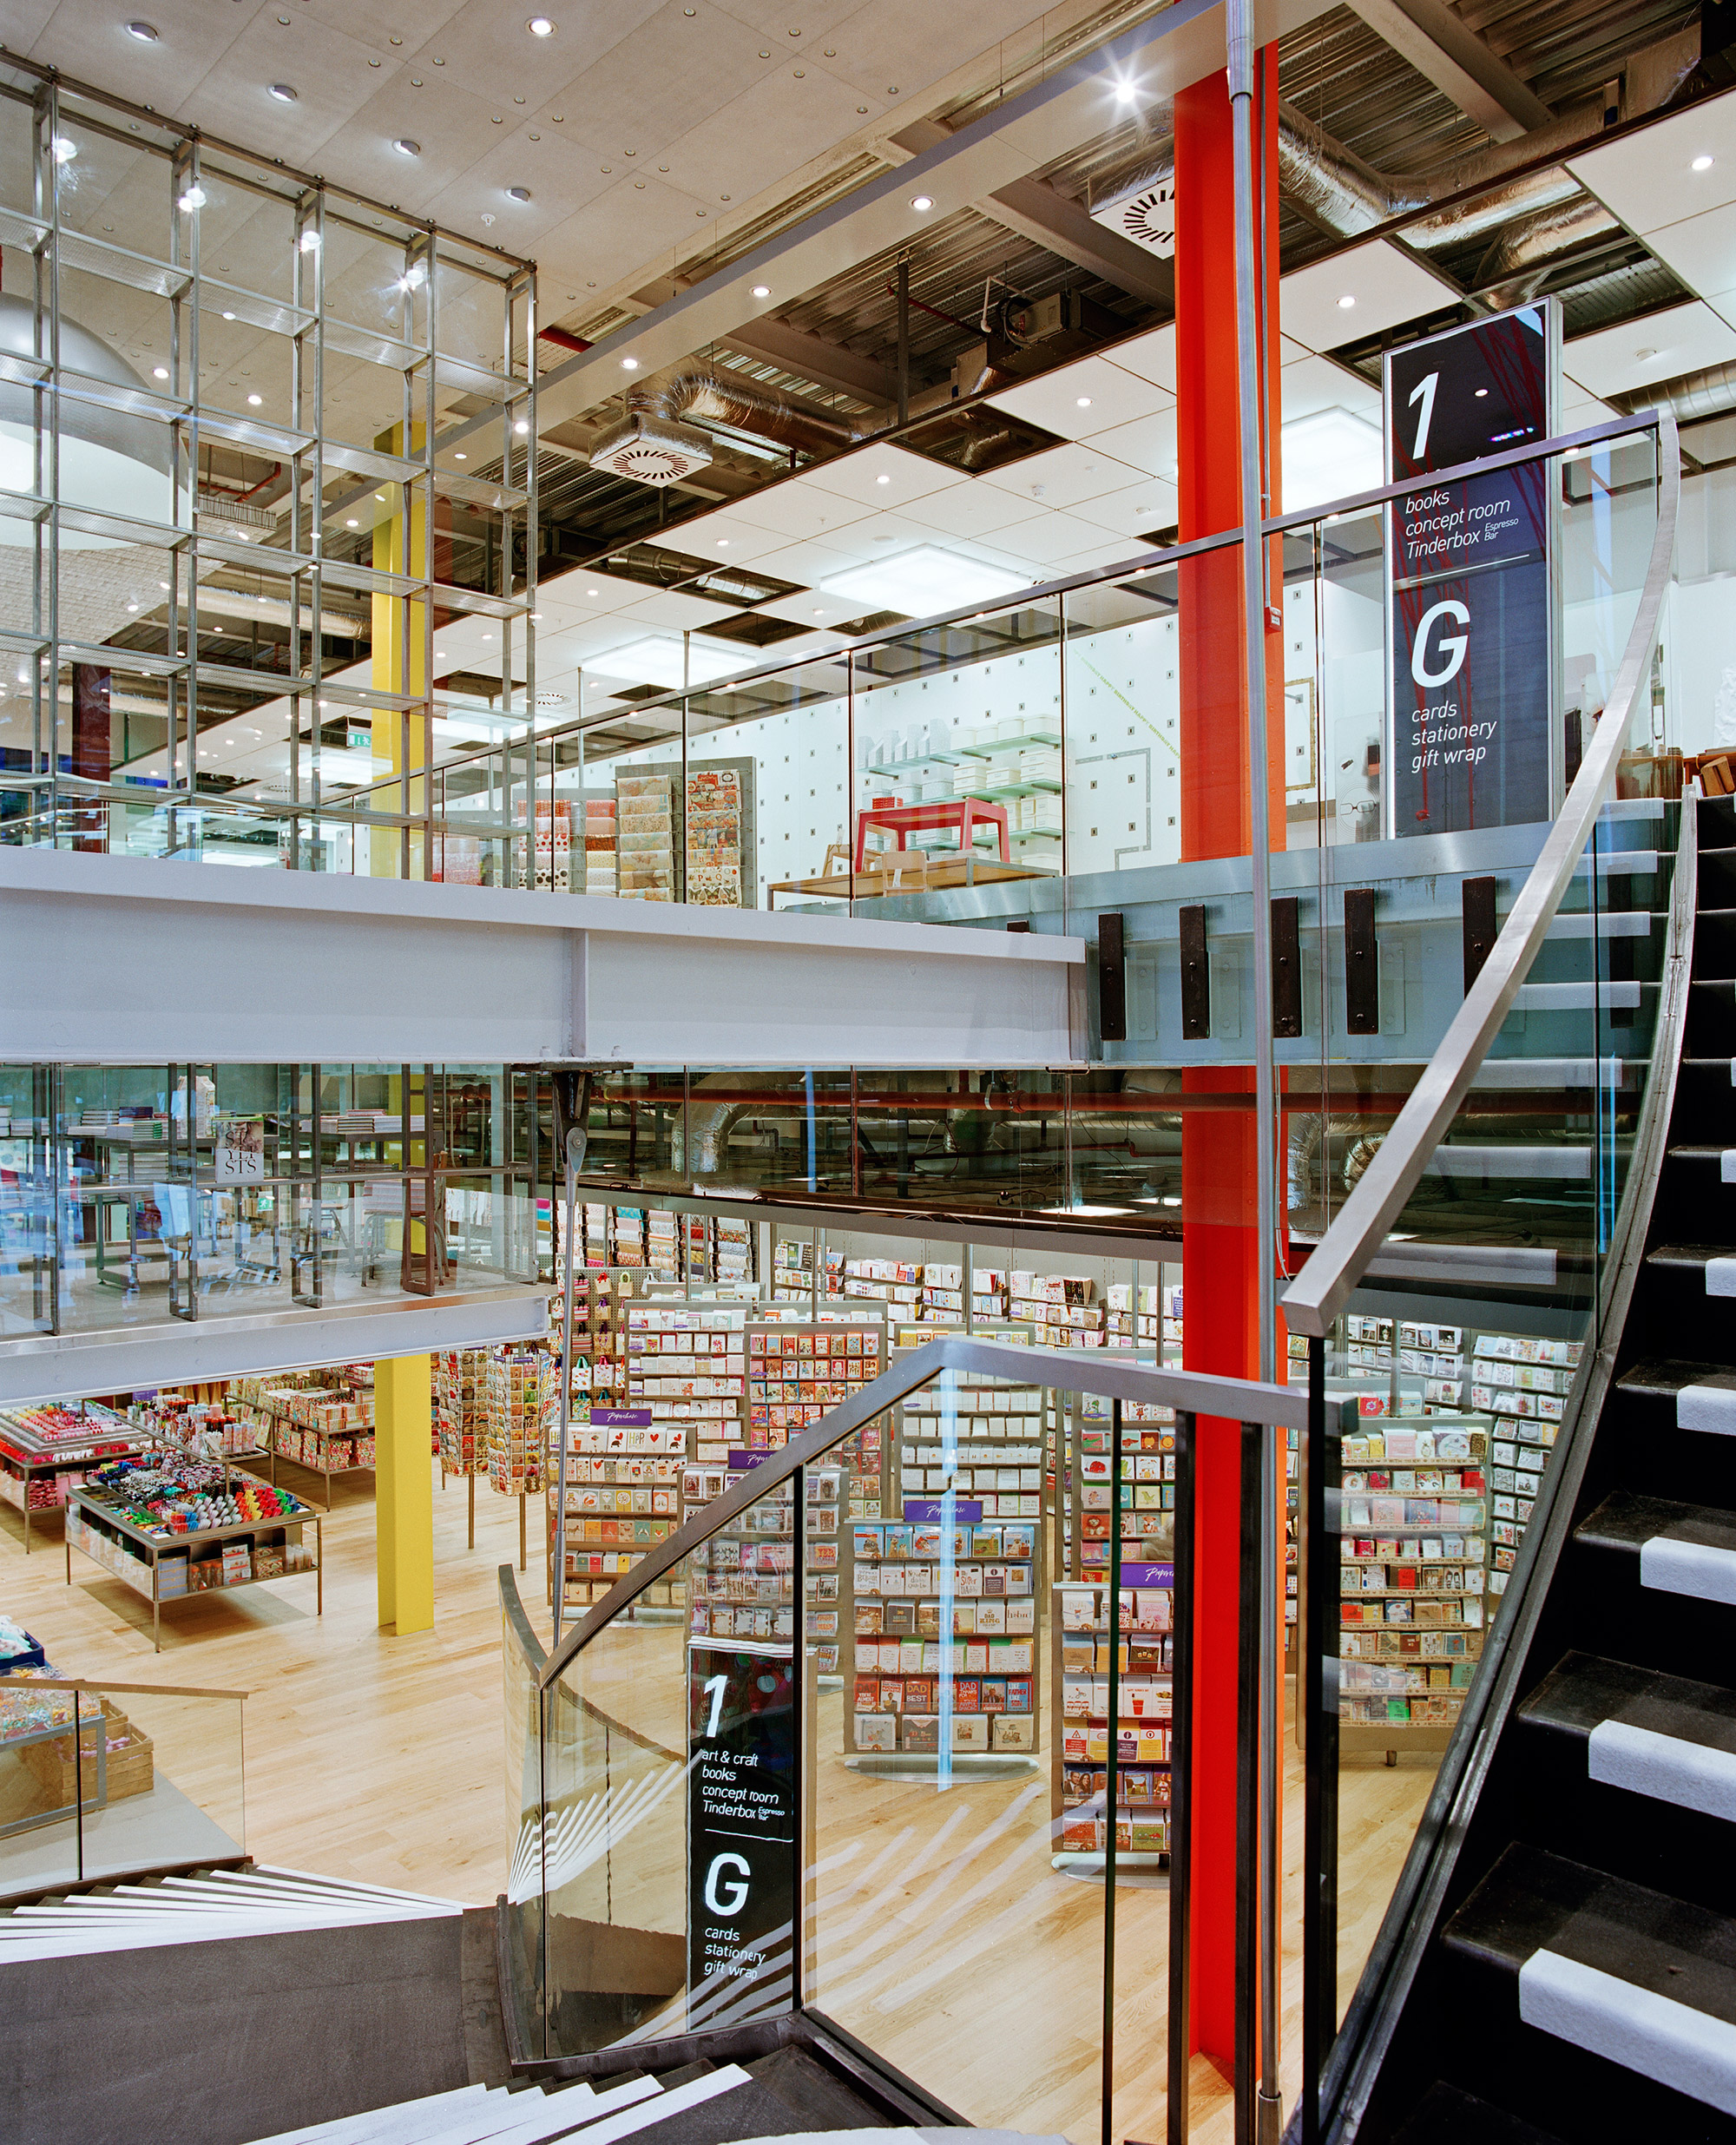 Paperchase Glasgow ground floor and first floor image